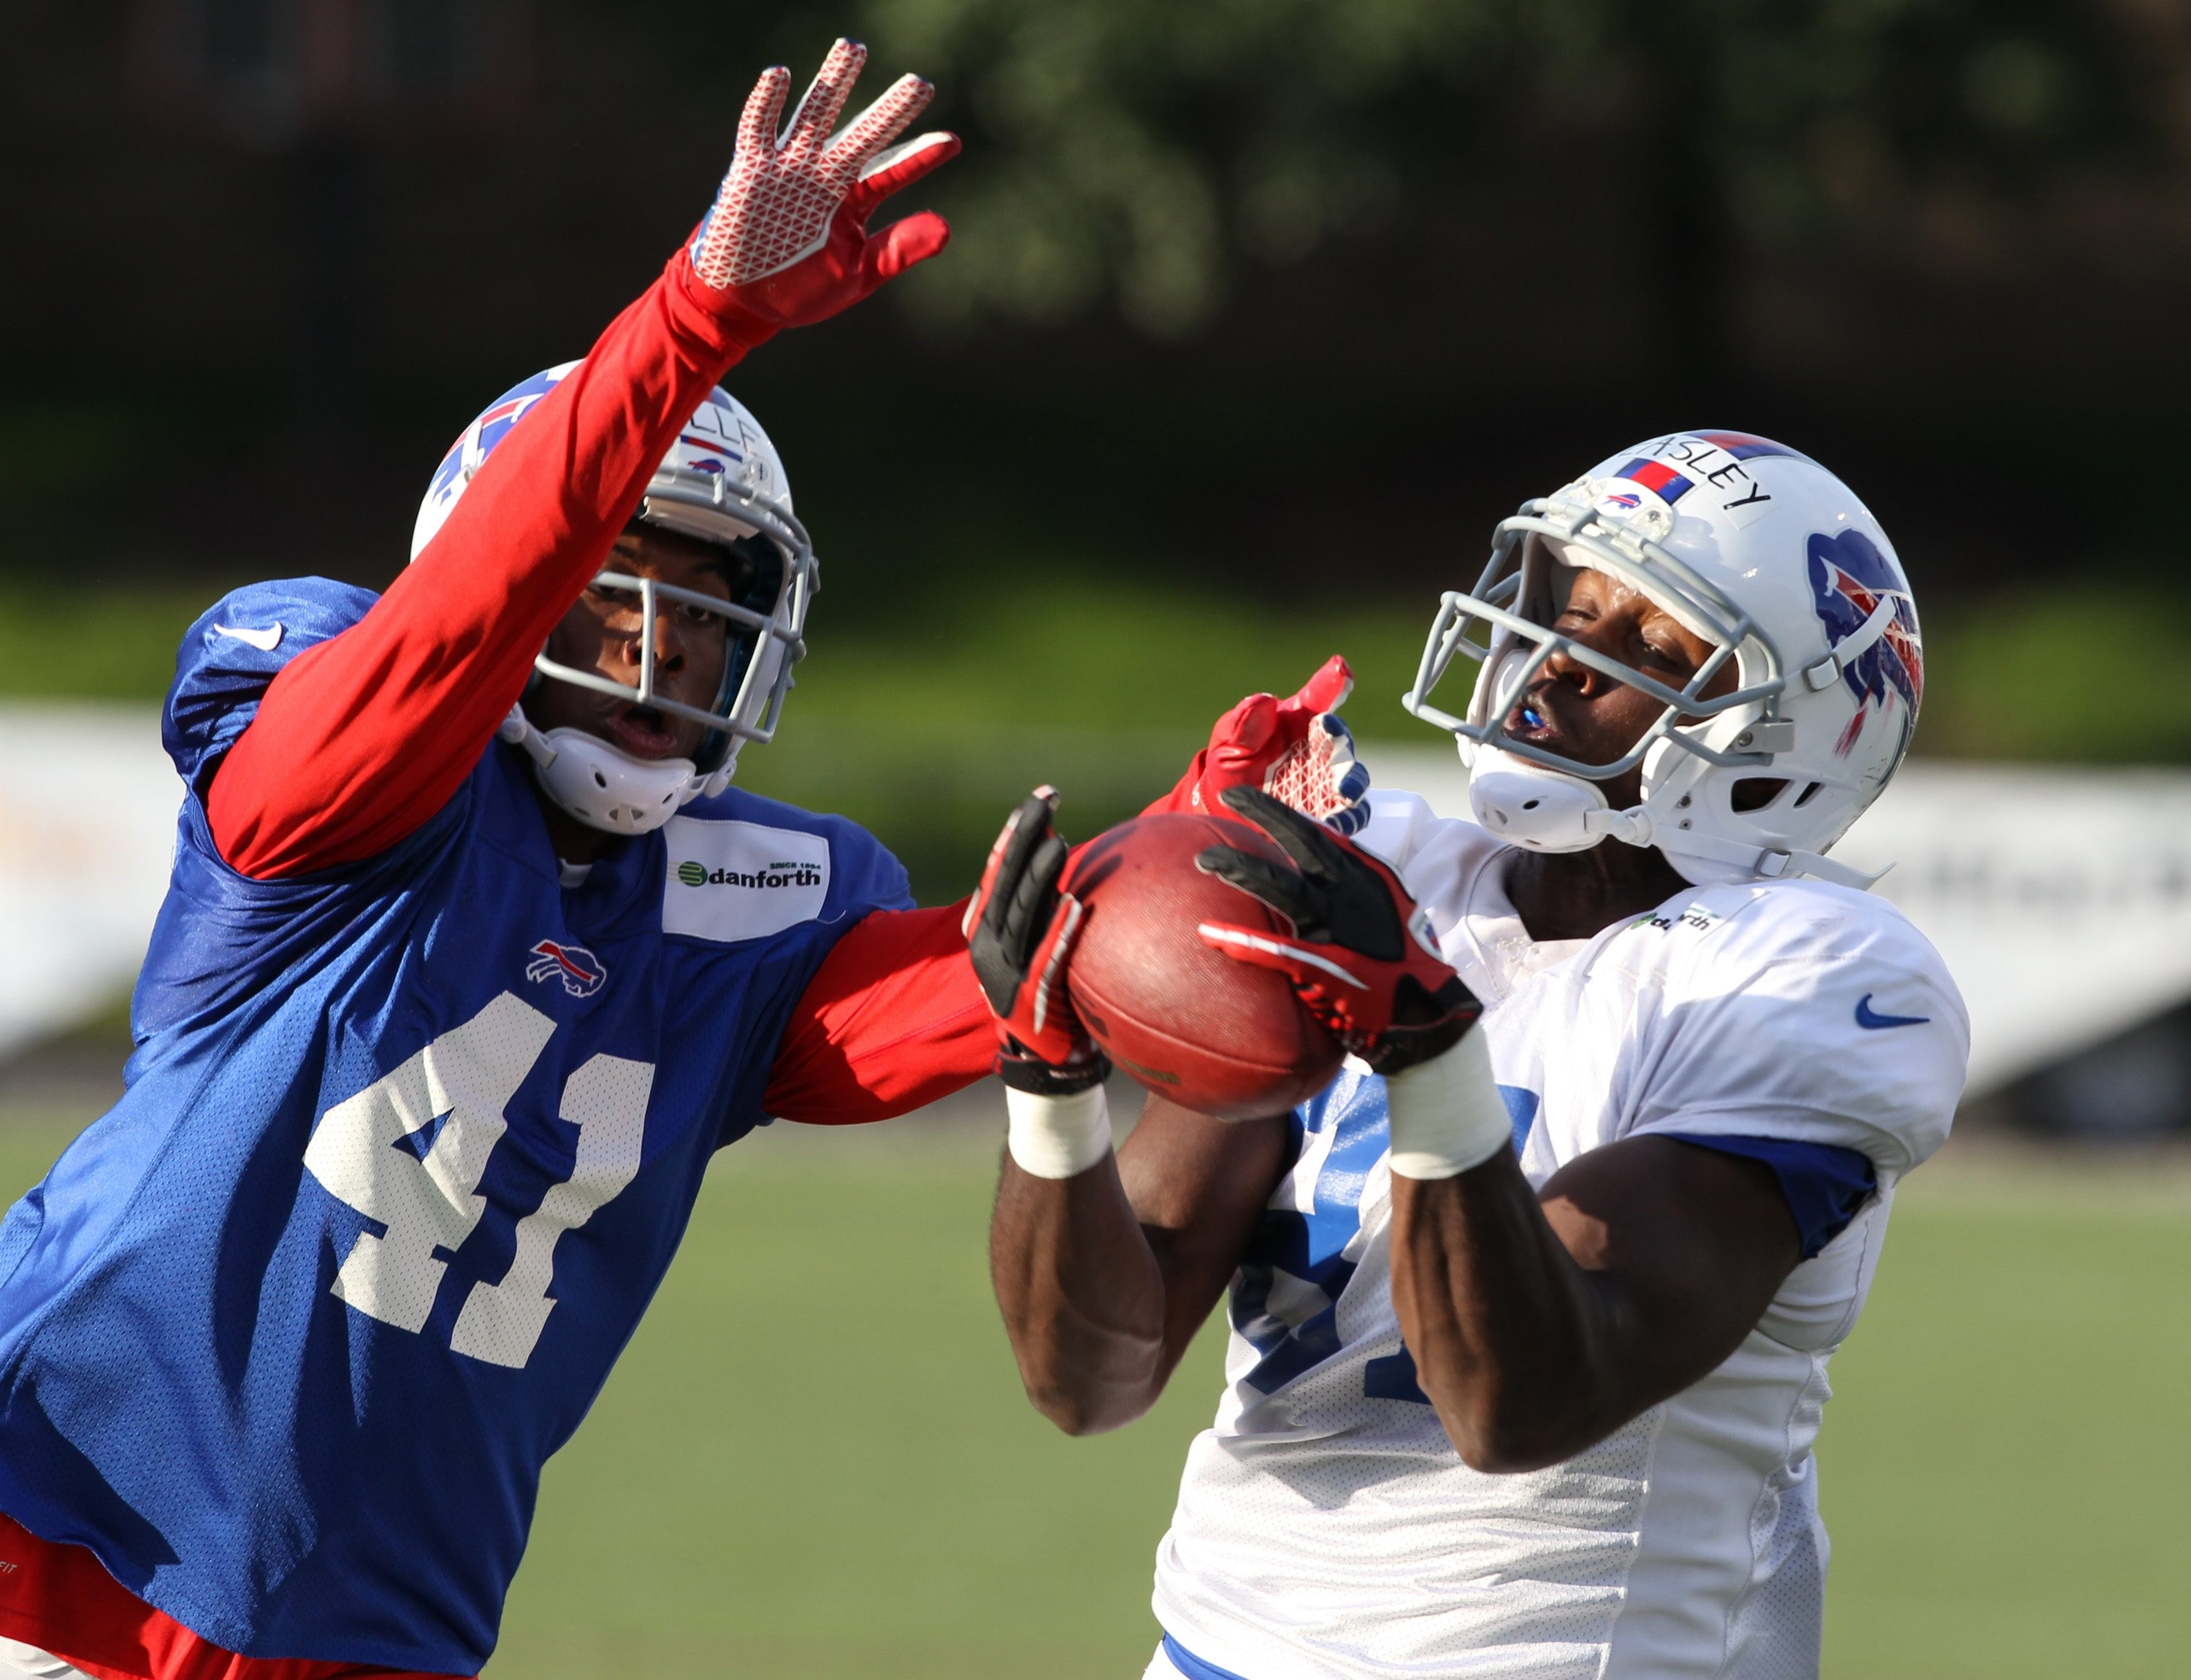 Bills wide receiver Marcus Easley makes a catch in front of defensive back Jumal Rolle during the team's first scrimmage Monday night at St. John Fisher College in Pittsford.